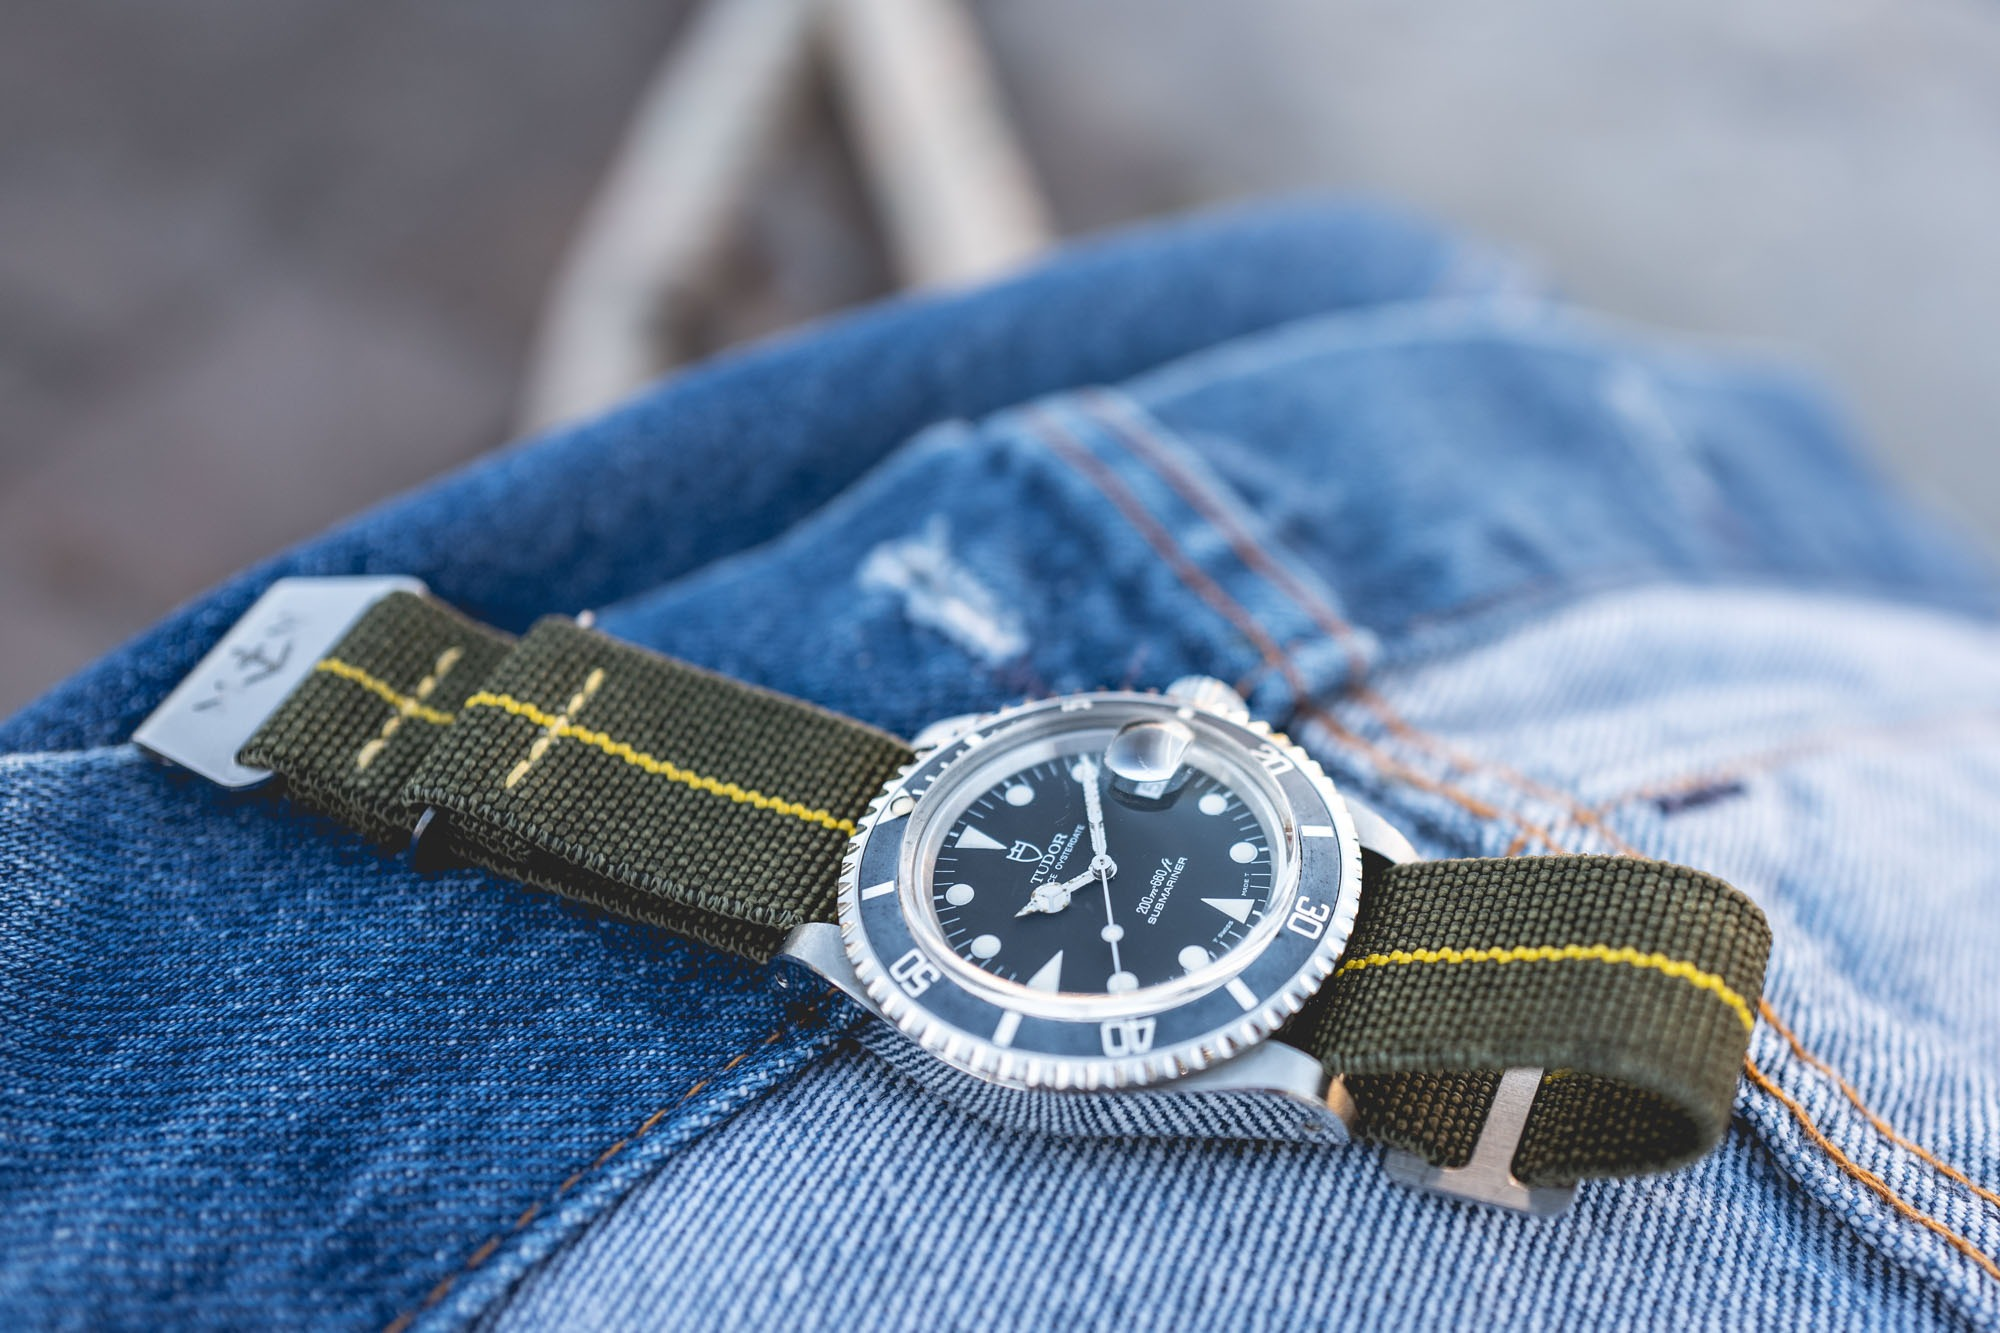 MN Straps - Bracelets Marine Nationale - Tudor Submariner 79090